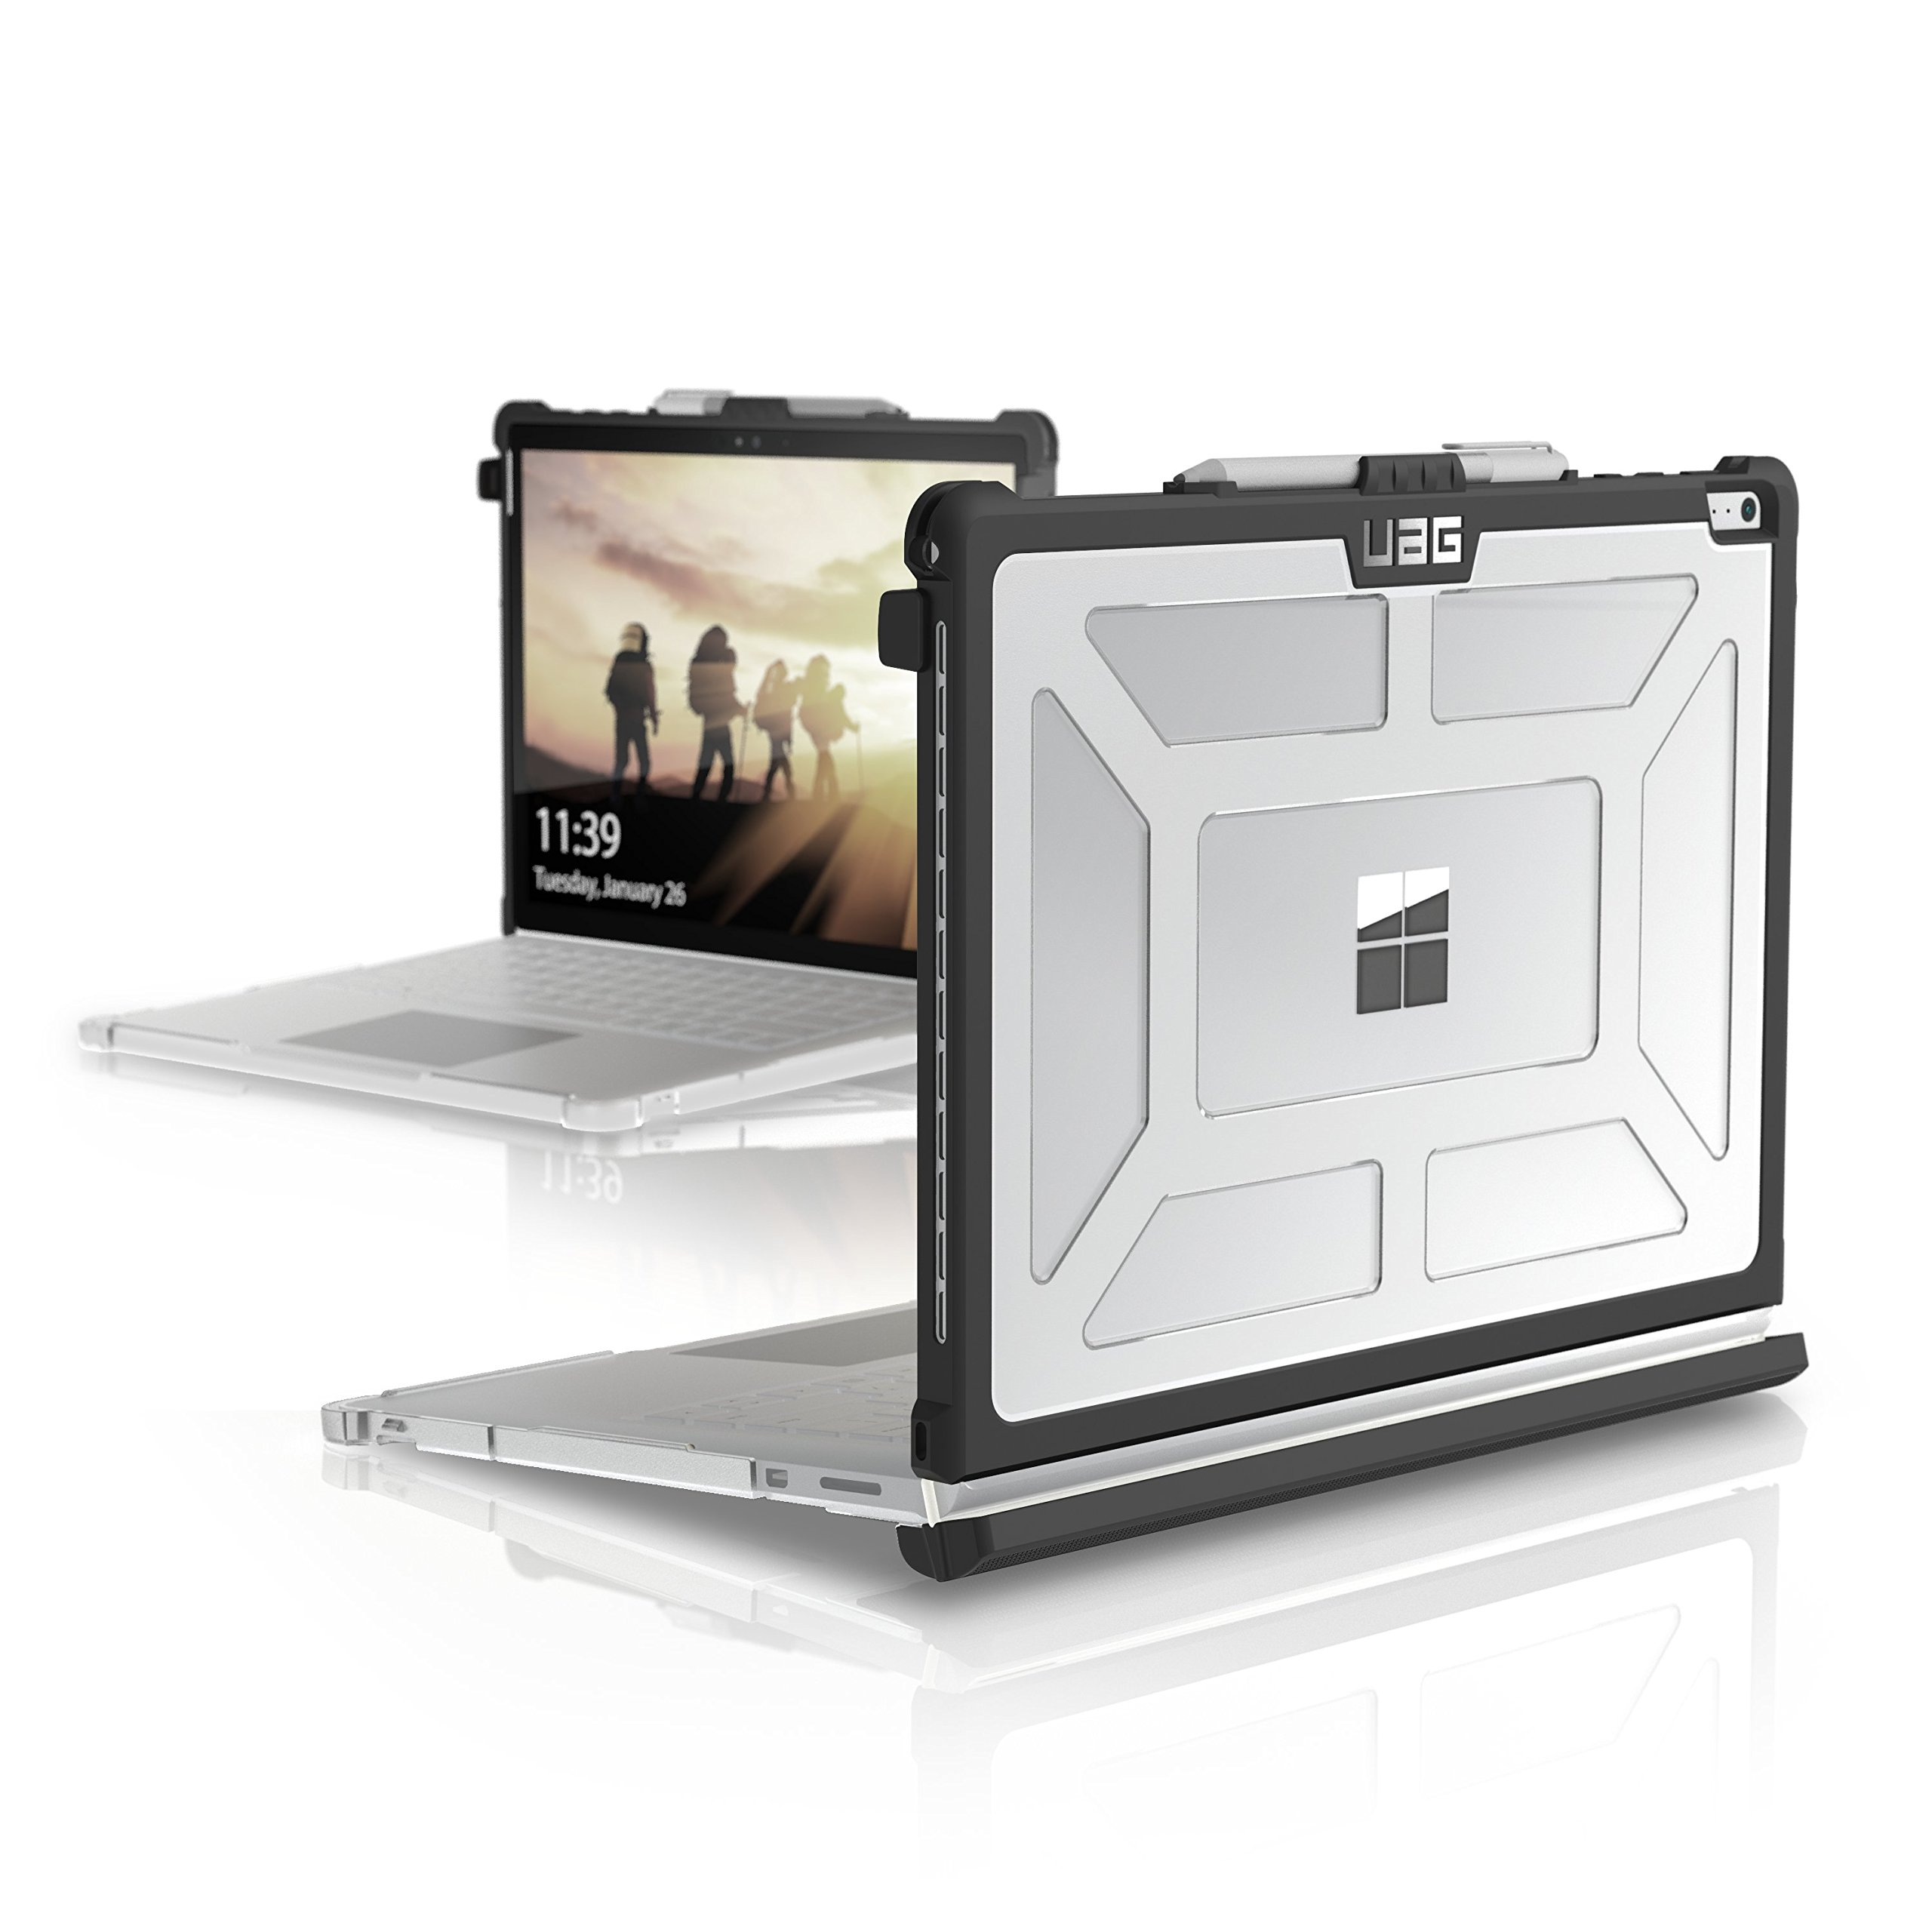 UAG Surface Book 2 [13.5-inch Screen]/Surface Book/Surface Book with Performance Base Feather-Light Rugged [Ice] Military Drop Tested Laptop Case by URBAN ARMOR GEAR (Image #1)